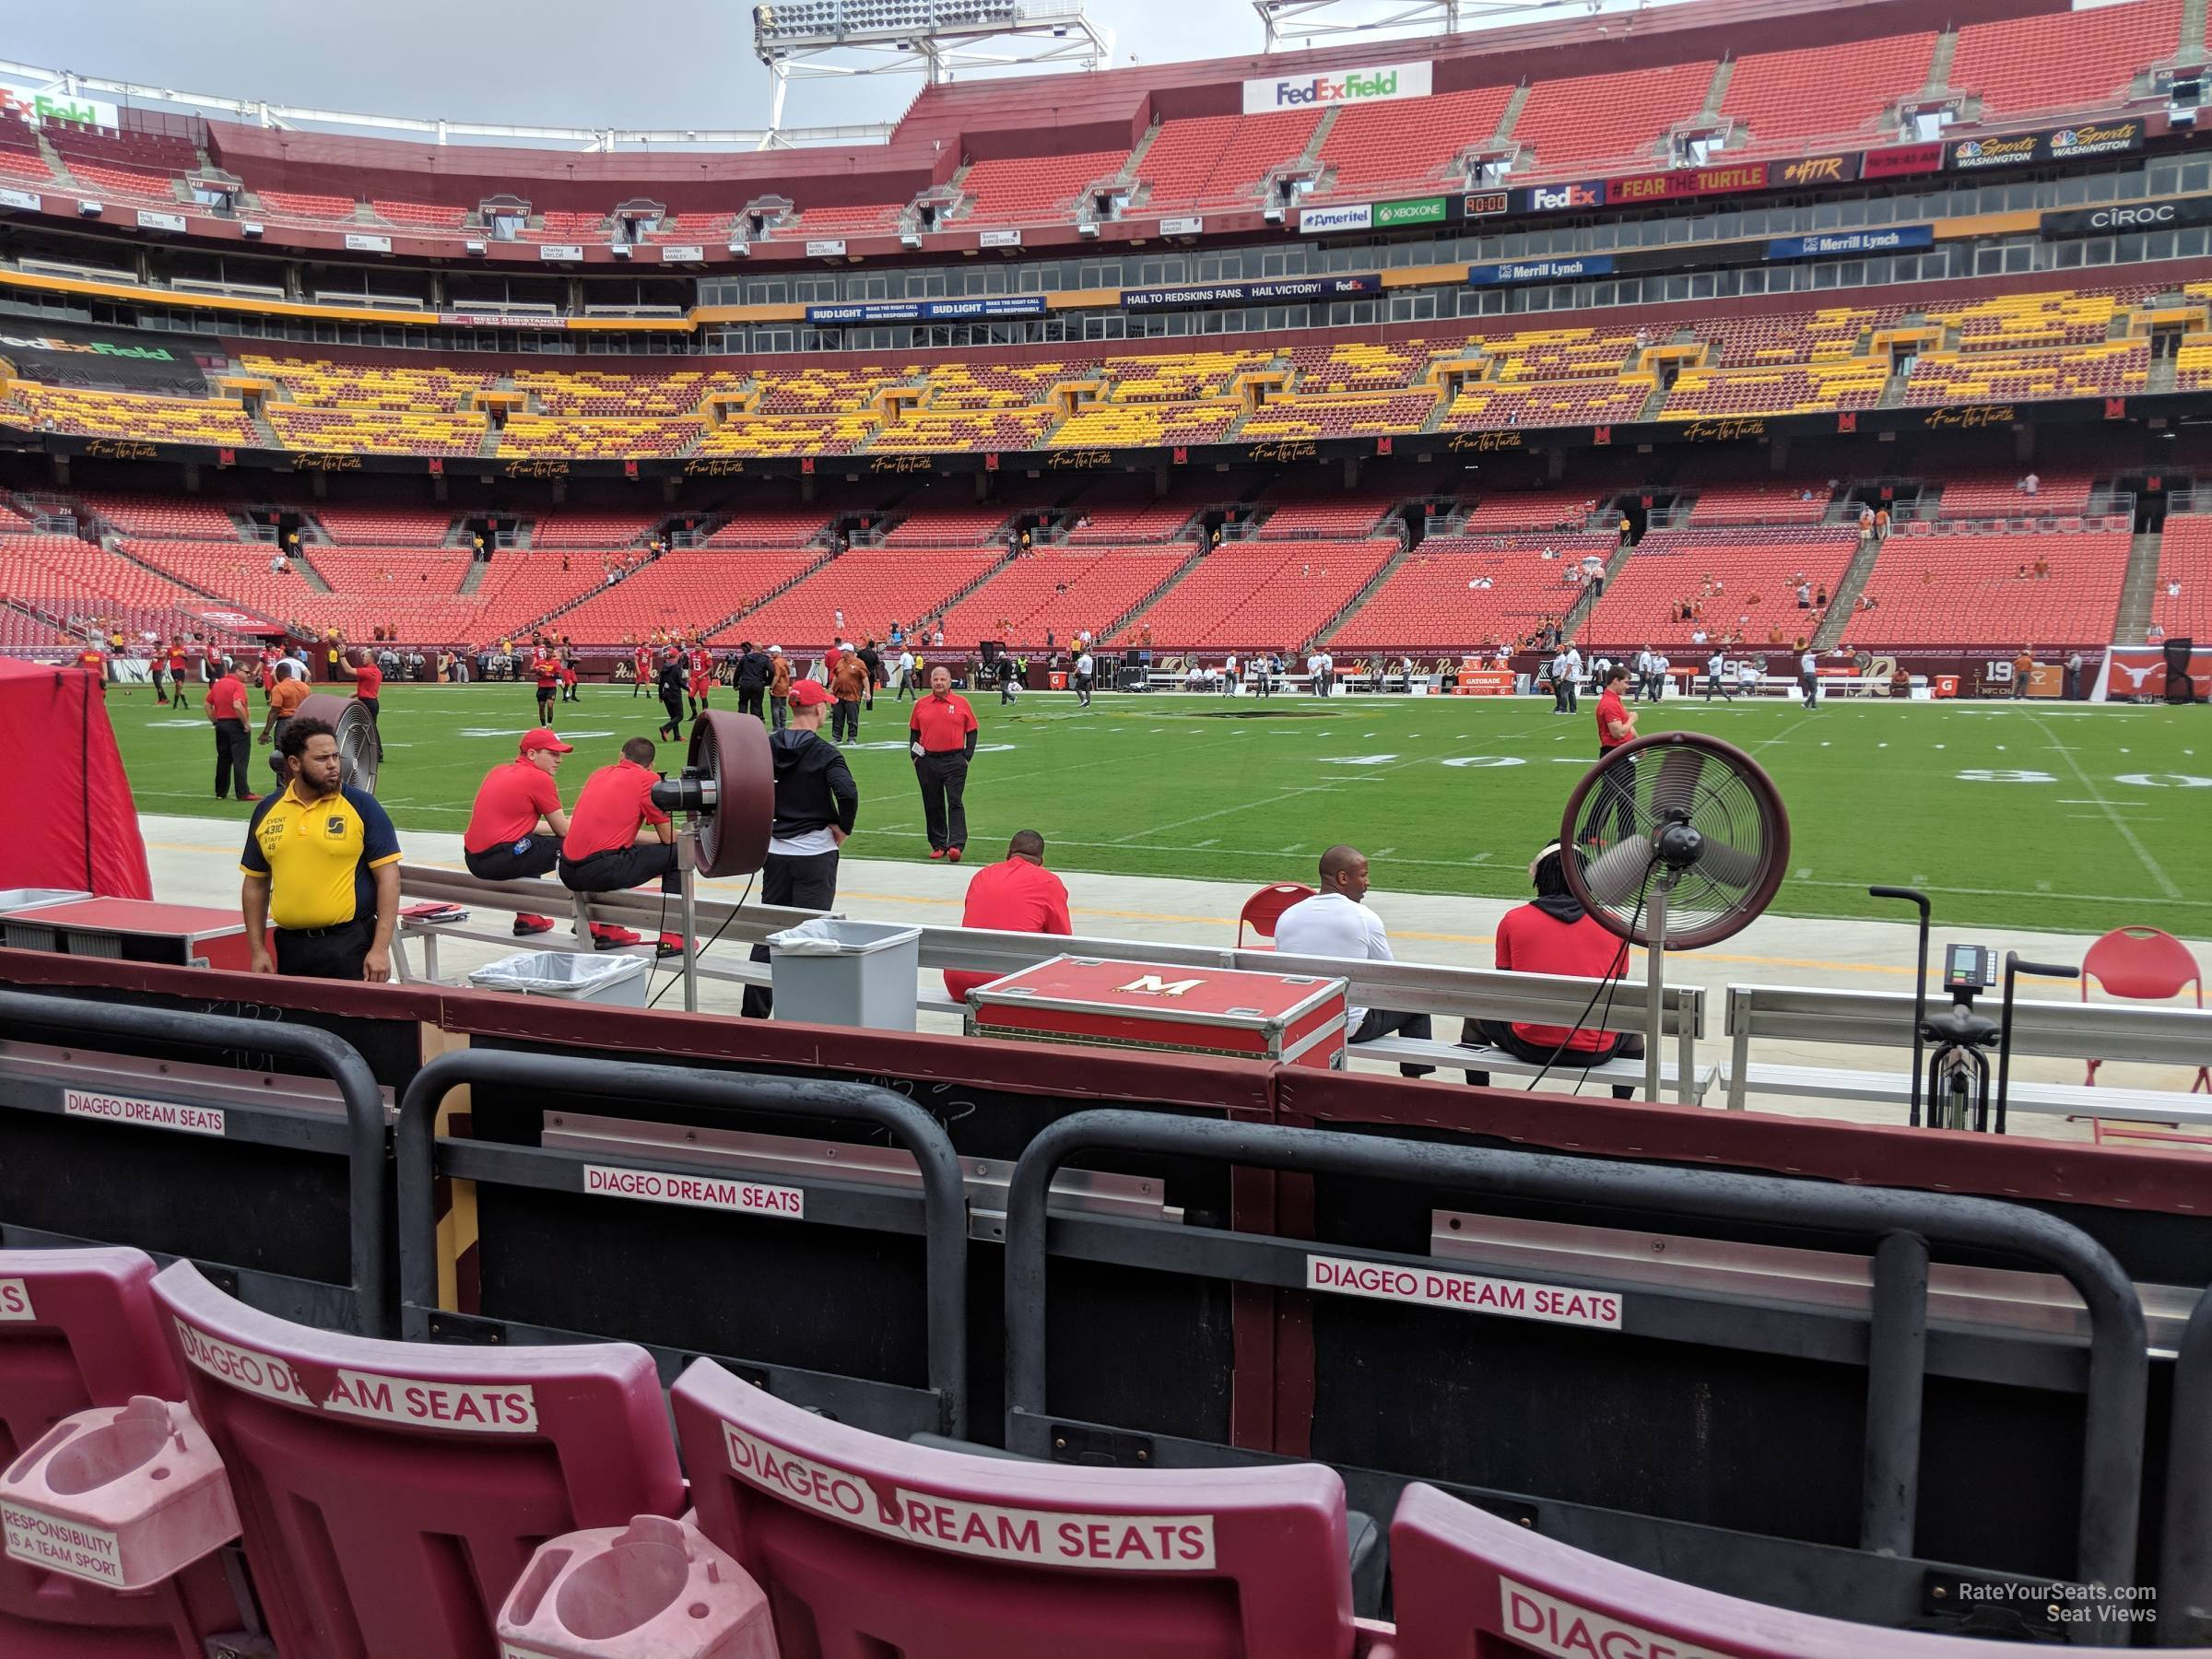 Section 41 at FedExField - RateYourSeats.com